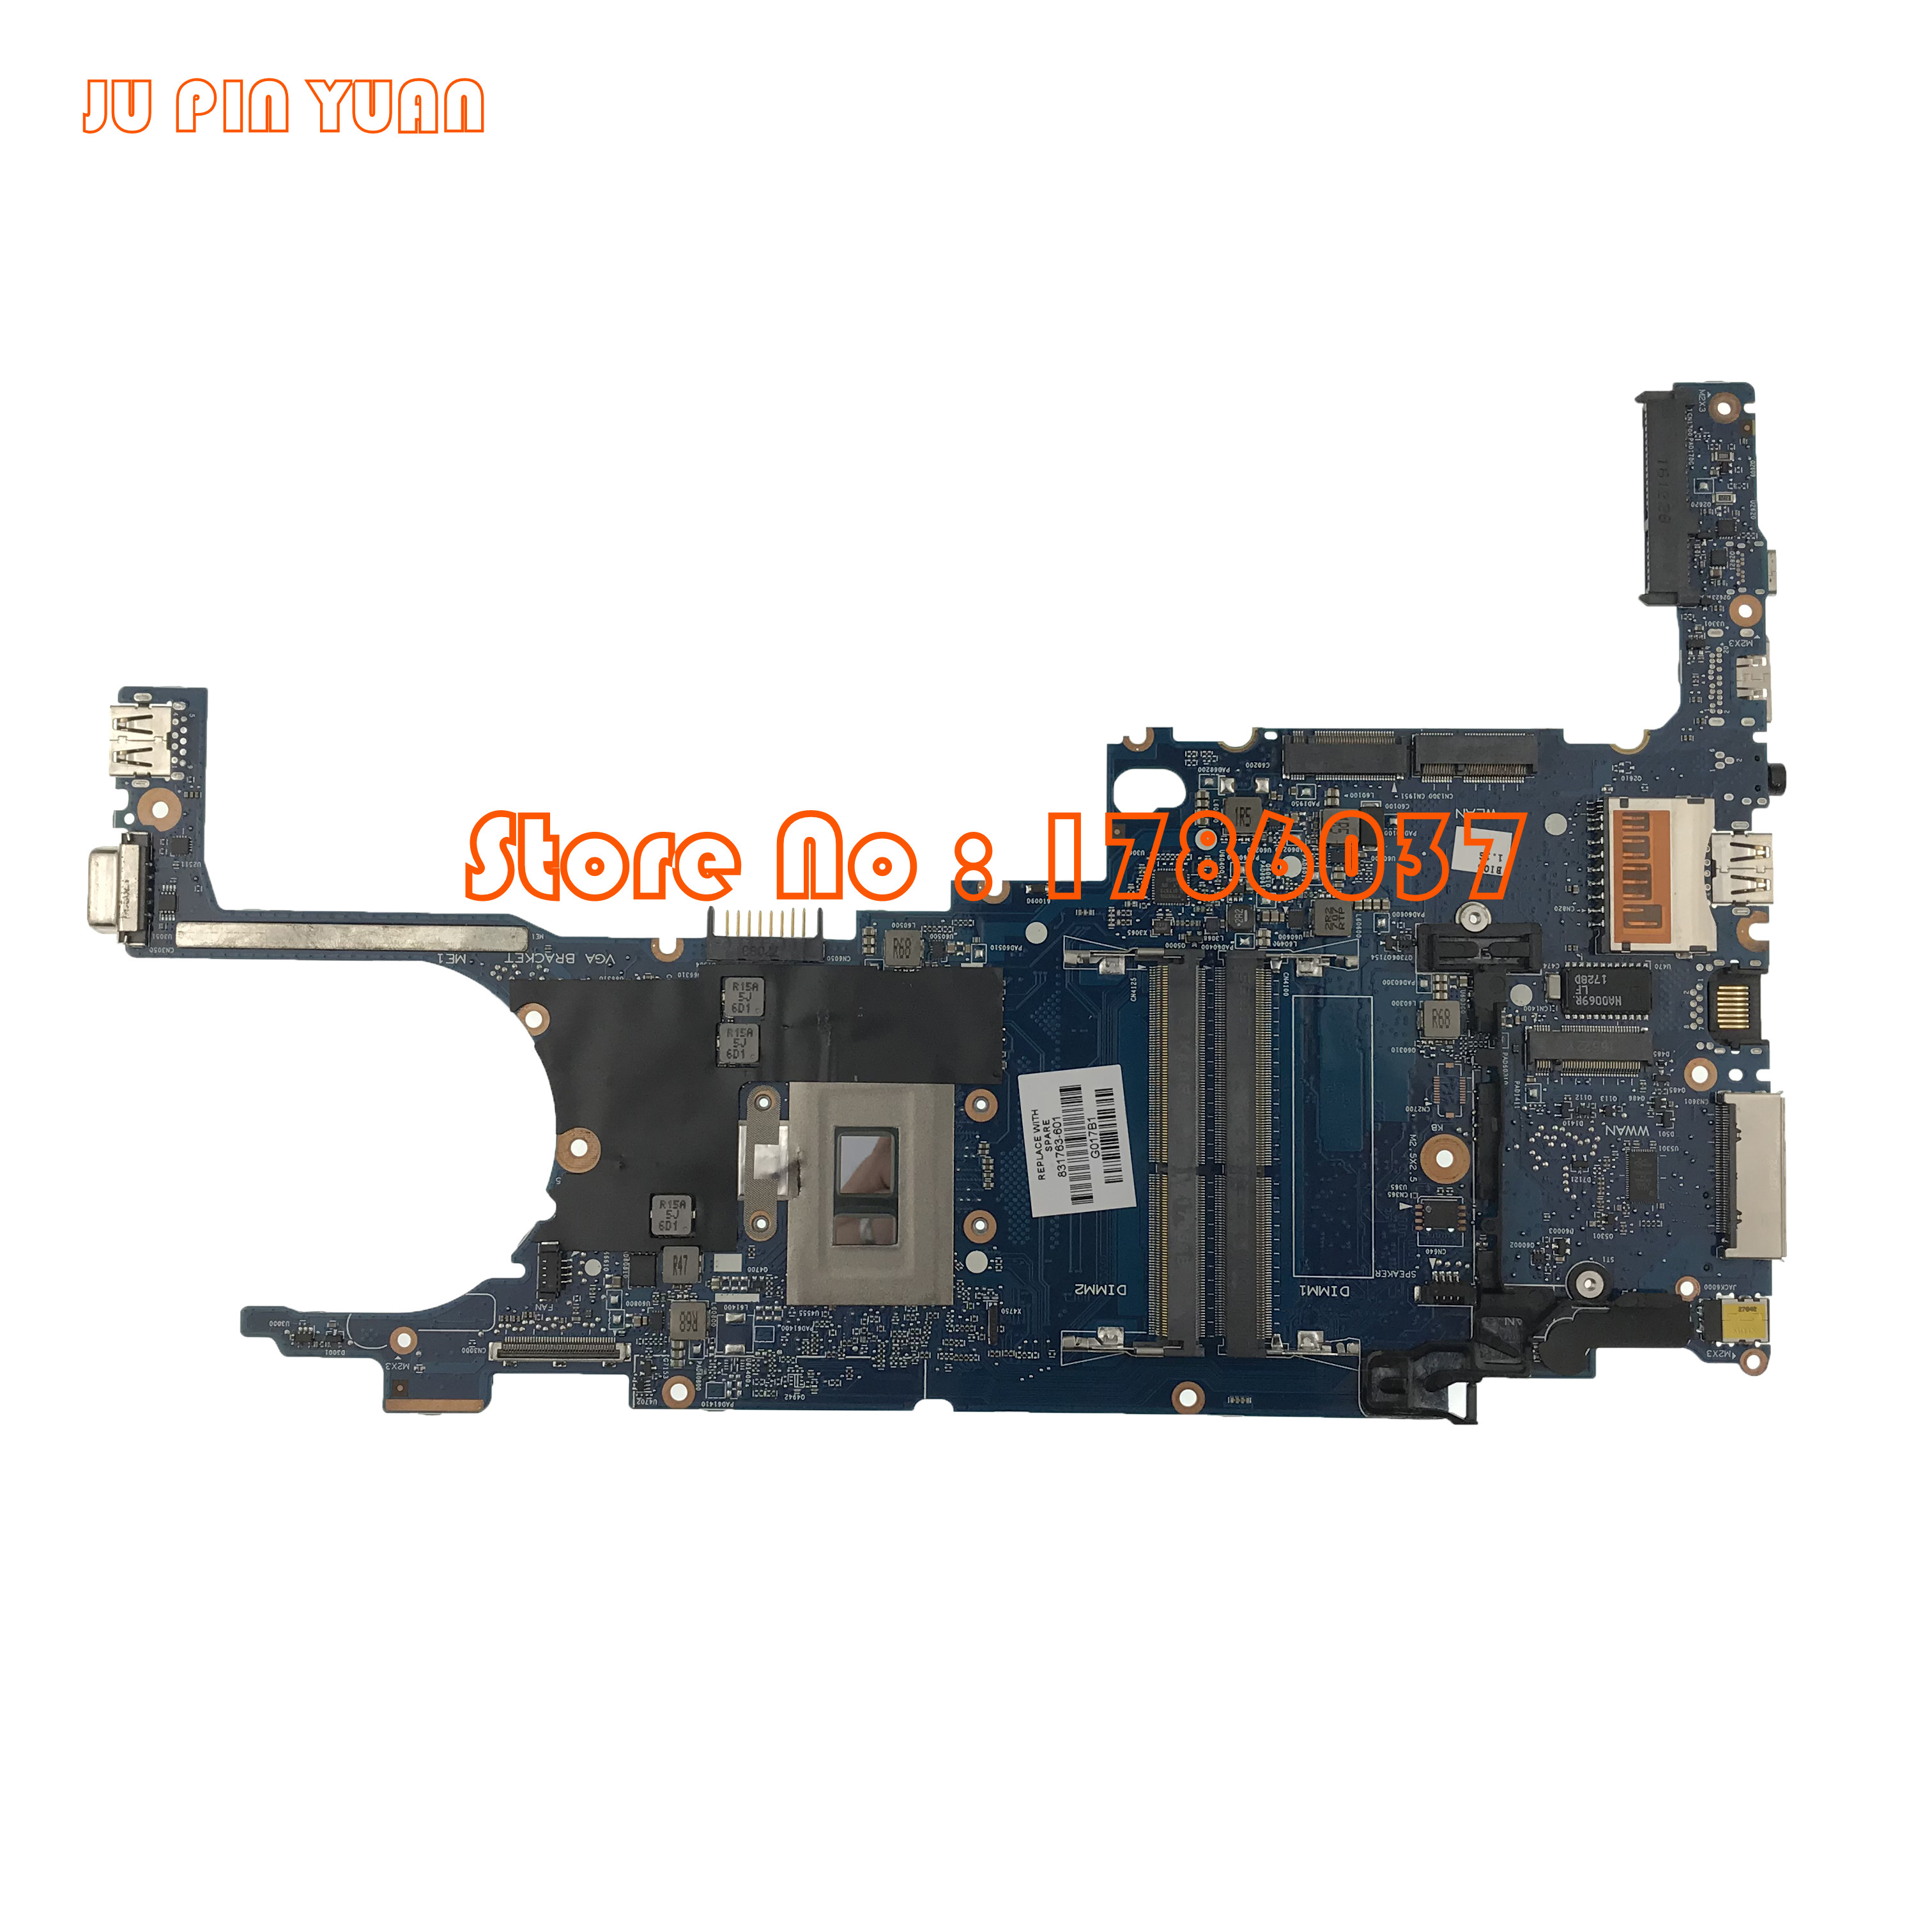 JU PIN YUAN Laptop motherboard for HP 820 G3 831763 001 831763 501 831763 601 WITH